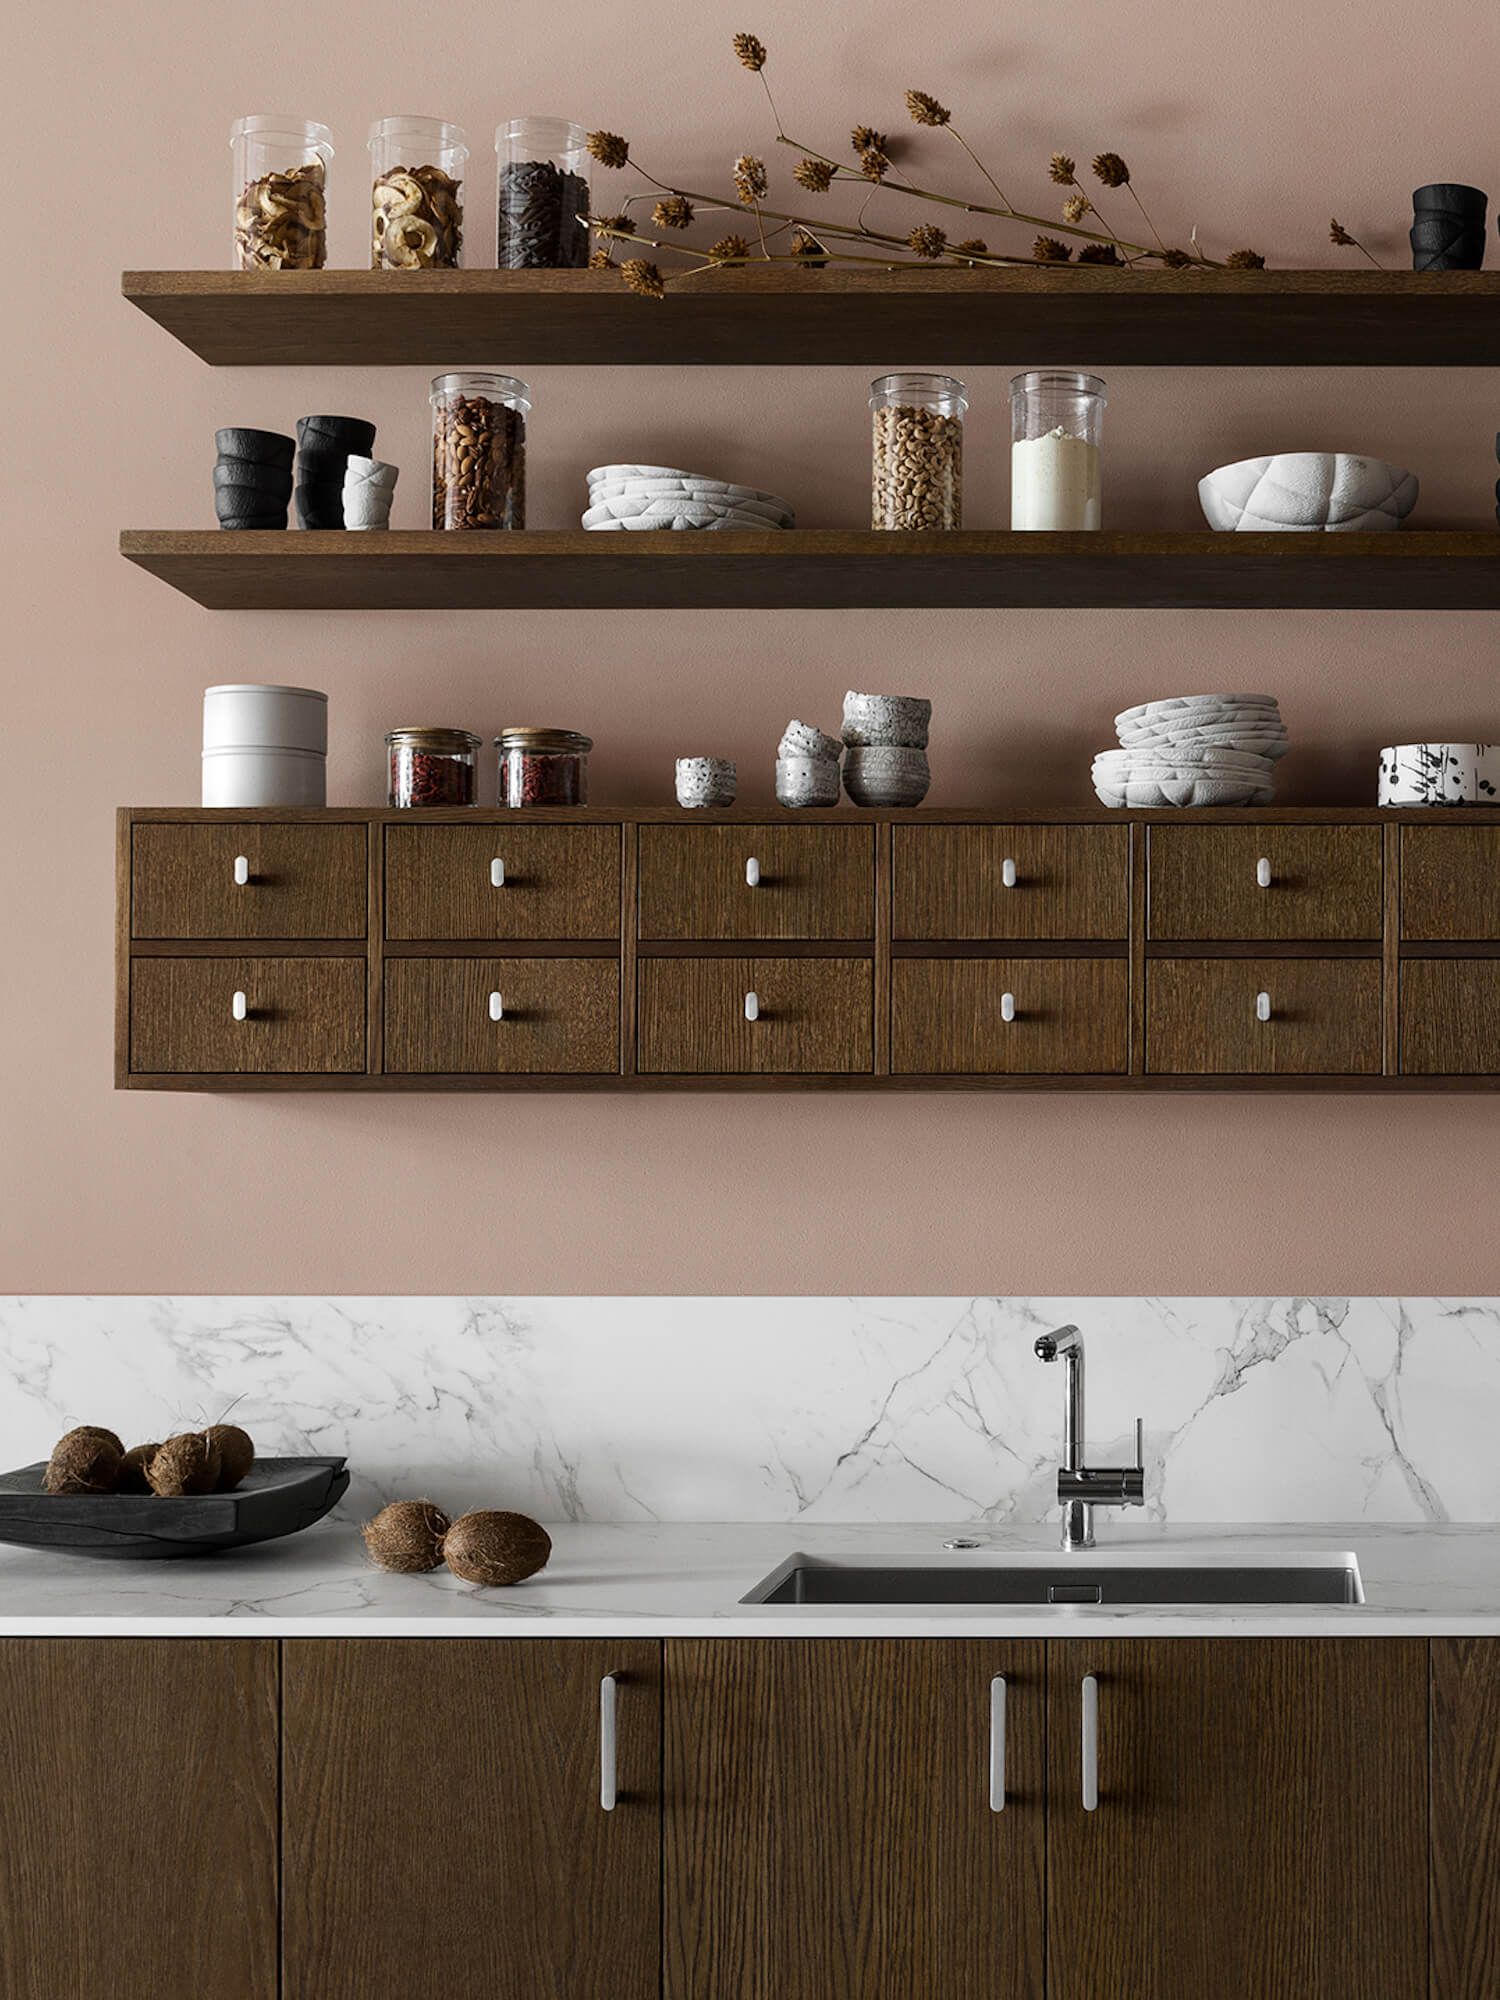 est living nordic style kitchen nordiska kok food pharmacy shelf